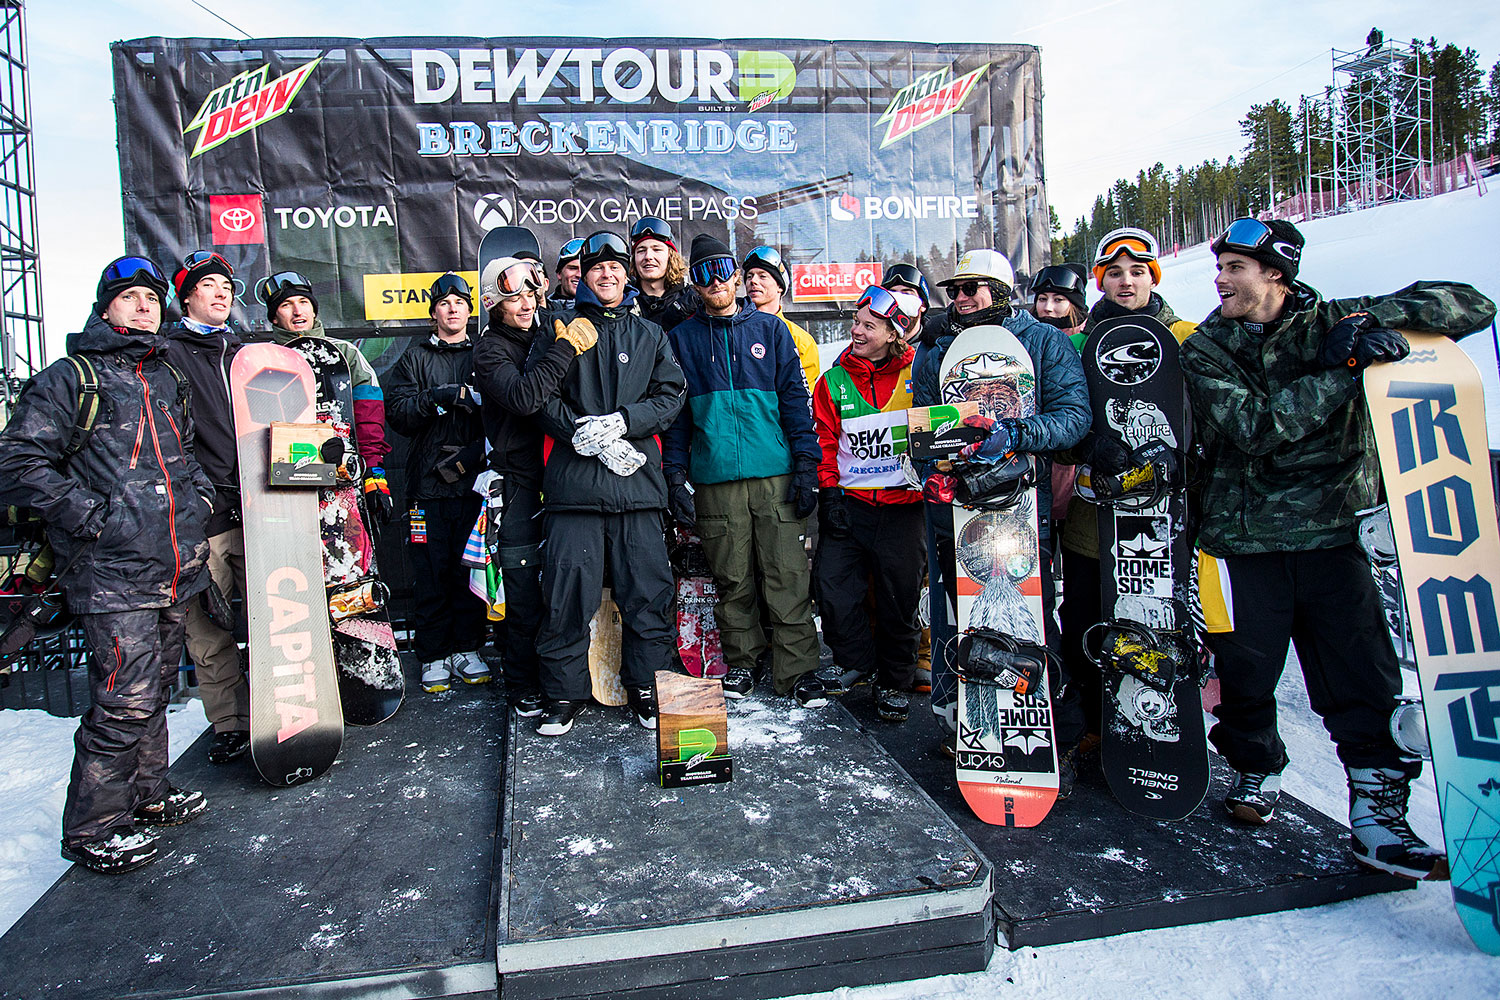 Ma podium_snb_men_team_final_dew_tour_breckenridge_ortiz_34